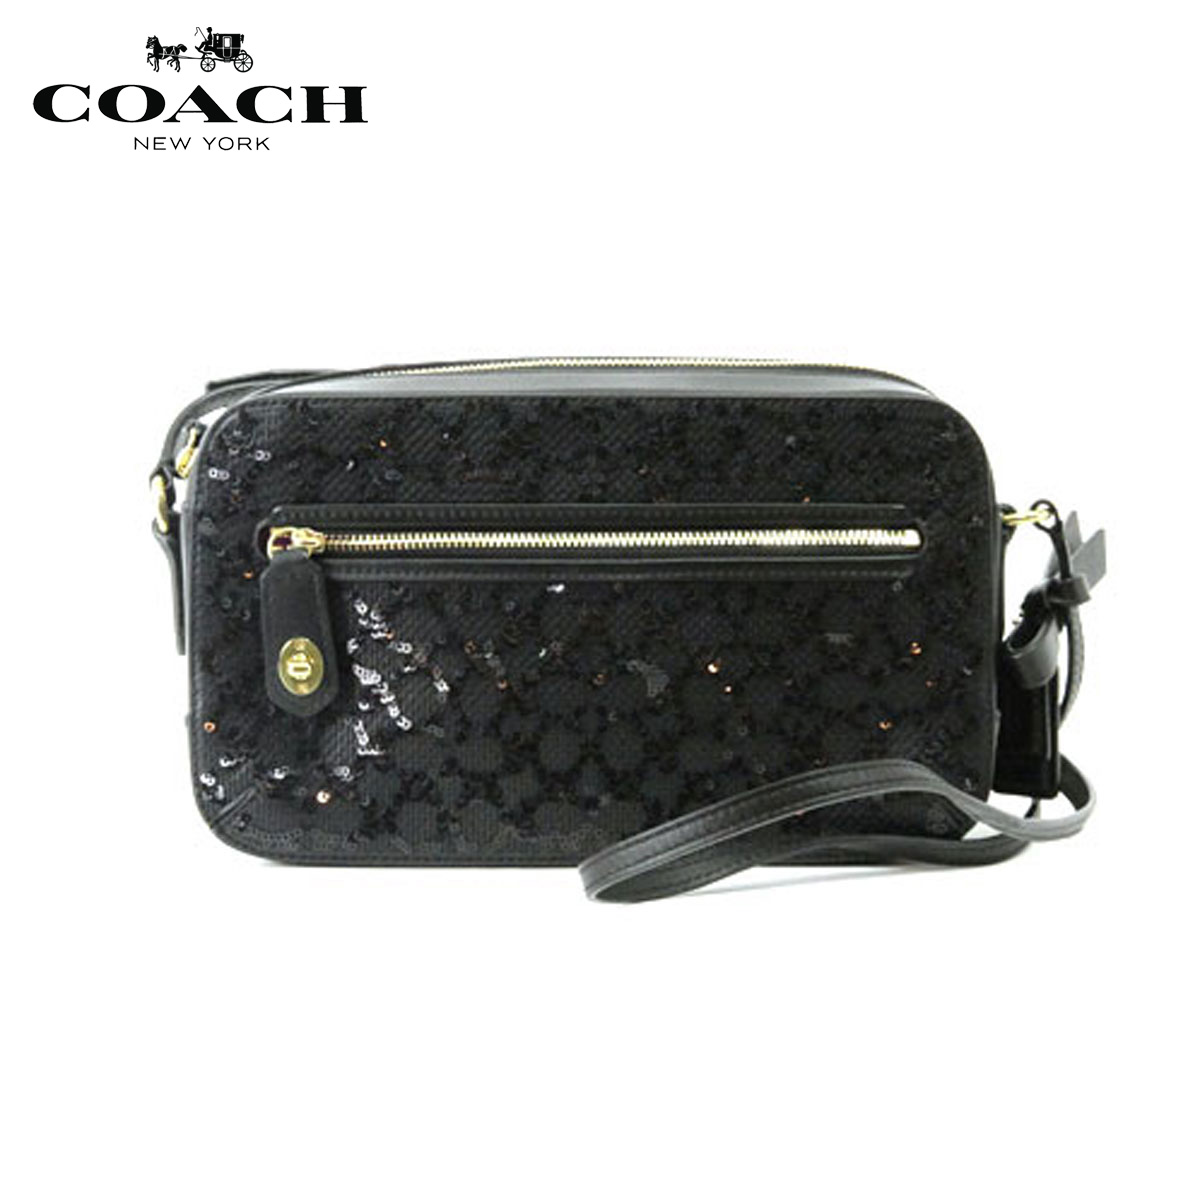 2d8b12f1bff Rakuten Ichiba shop MIXON  Coach COACH genuine ladies bag CROSSBODY ...